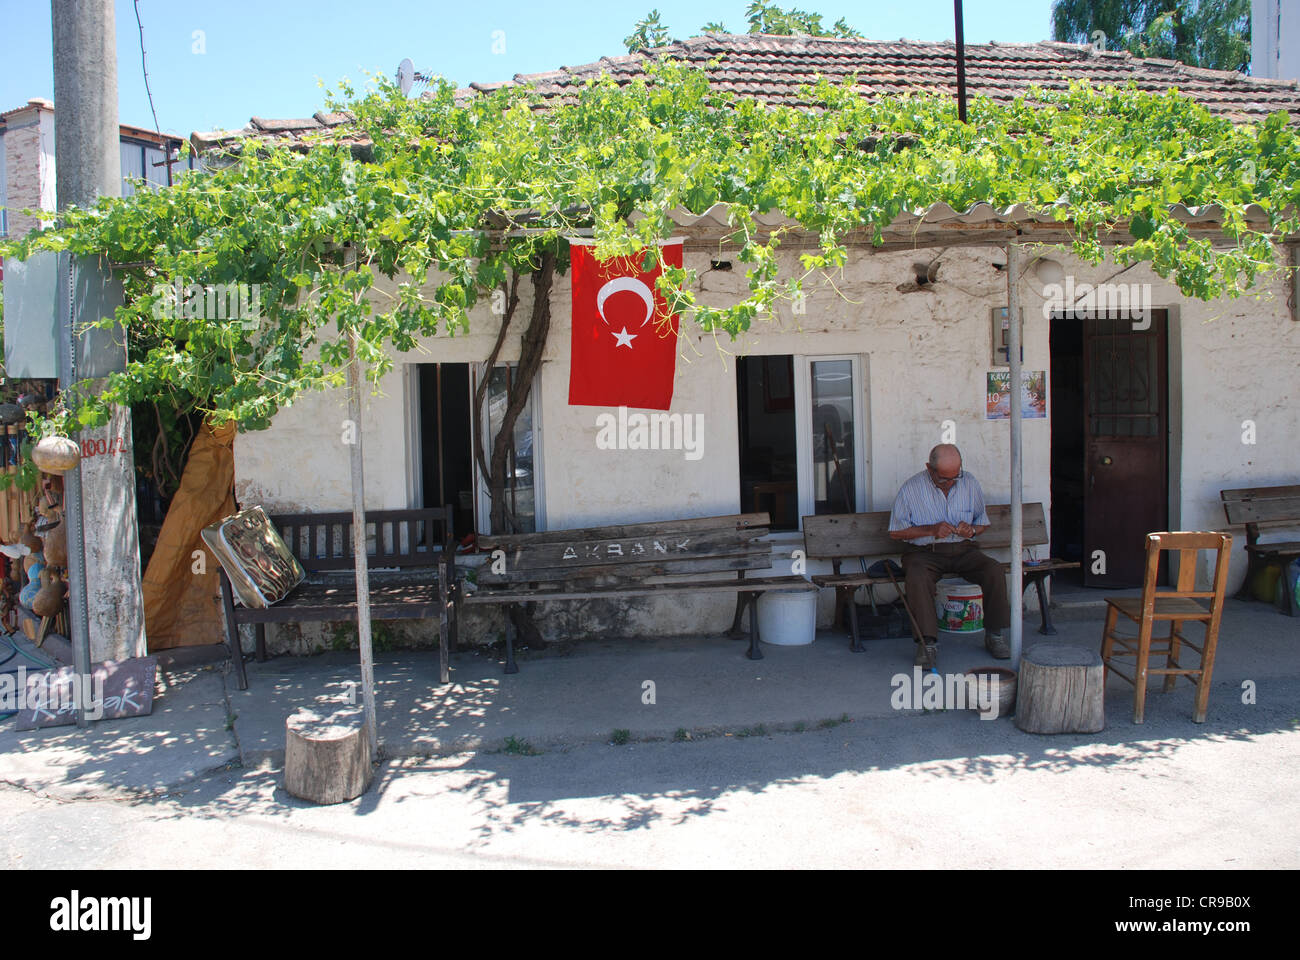 An elderly man in the town of Gumusluk underneath the national flag in South West Turkey. Picture by: Adam Alexander/Alamy - Stock Image